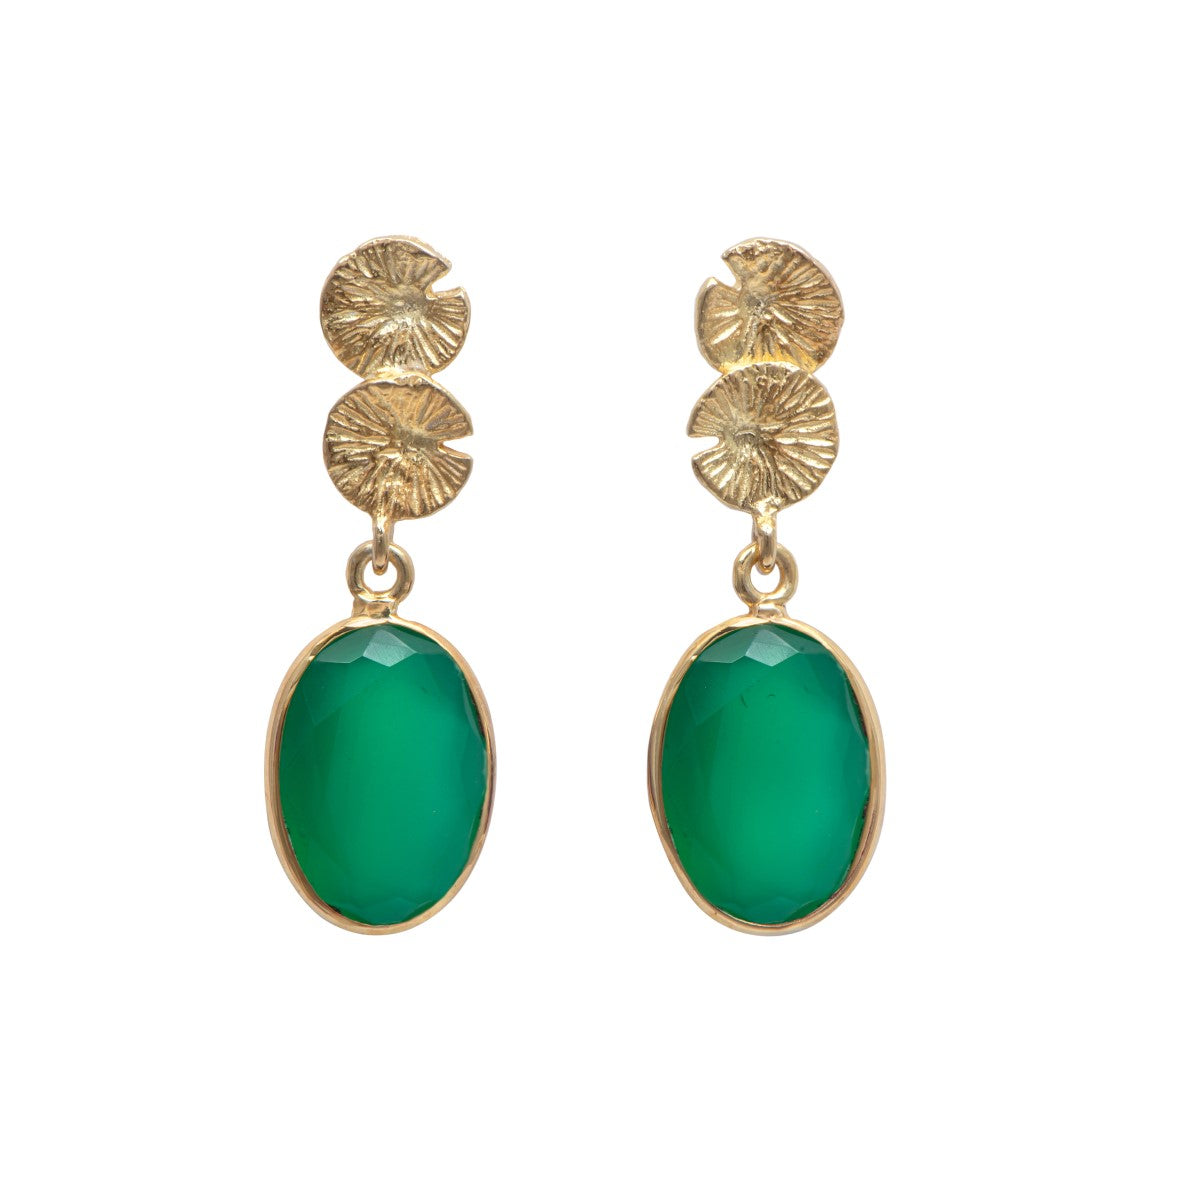 Lily Pad Earrings in Gold Plated Sterling Silver with a Green Onyx Gemstone Drop